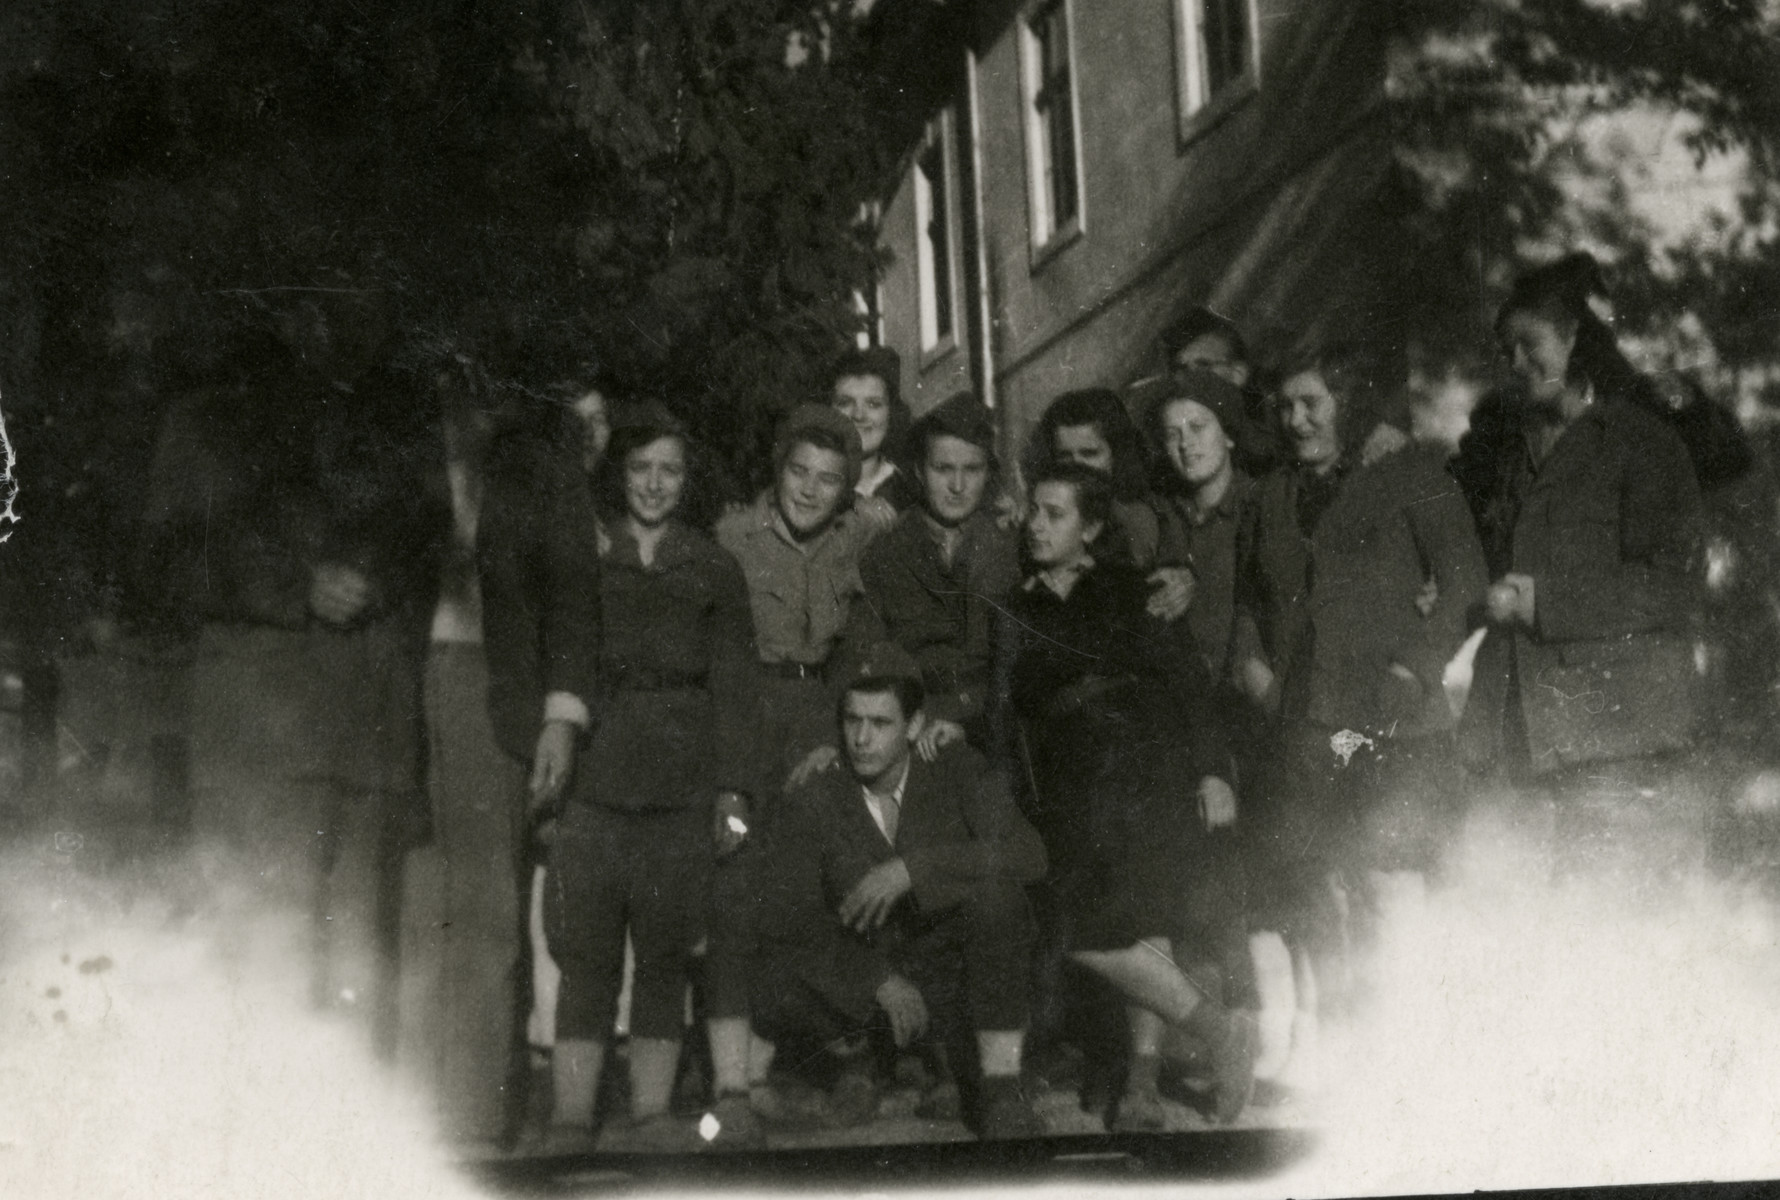 Group portrait of Jewish female partisans in Yugoslavia.  Donna Papo stands in the front with her legs crossed.